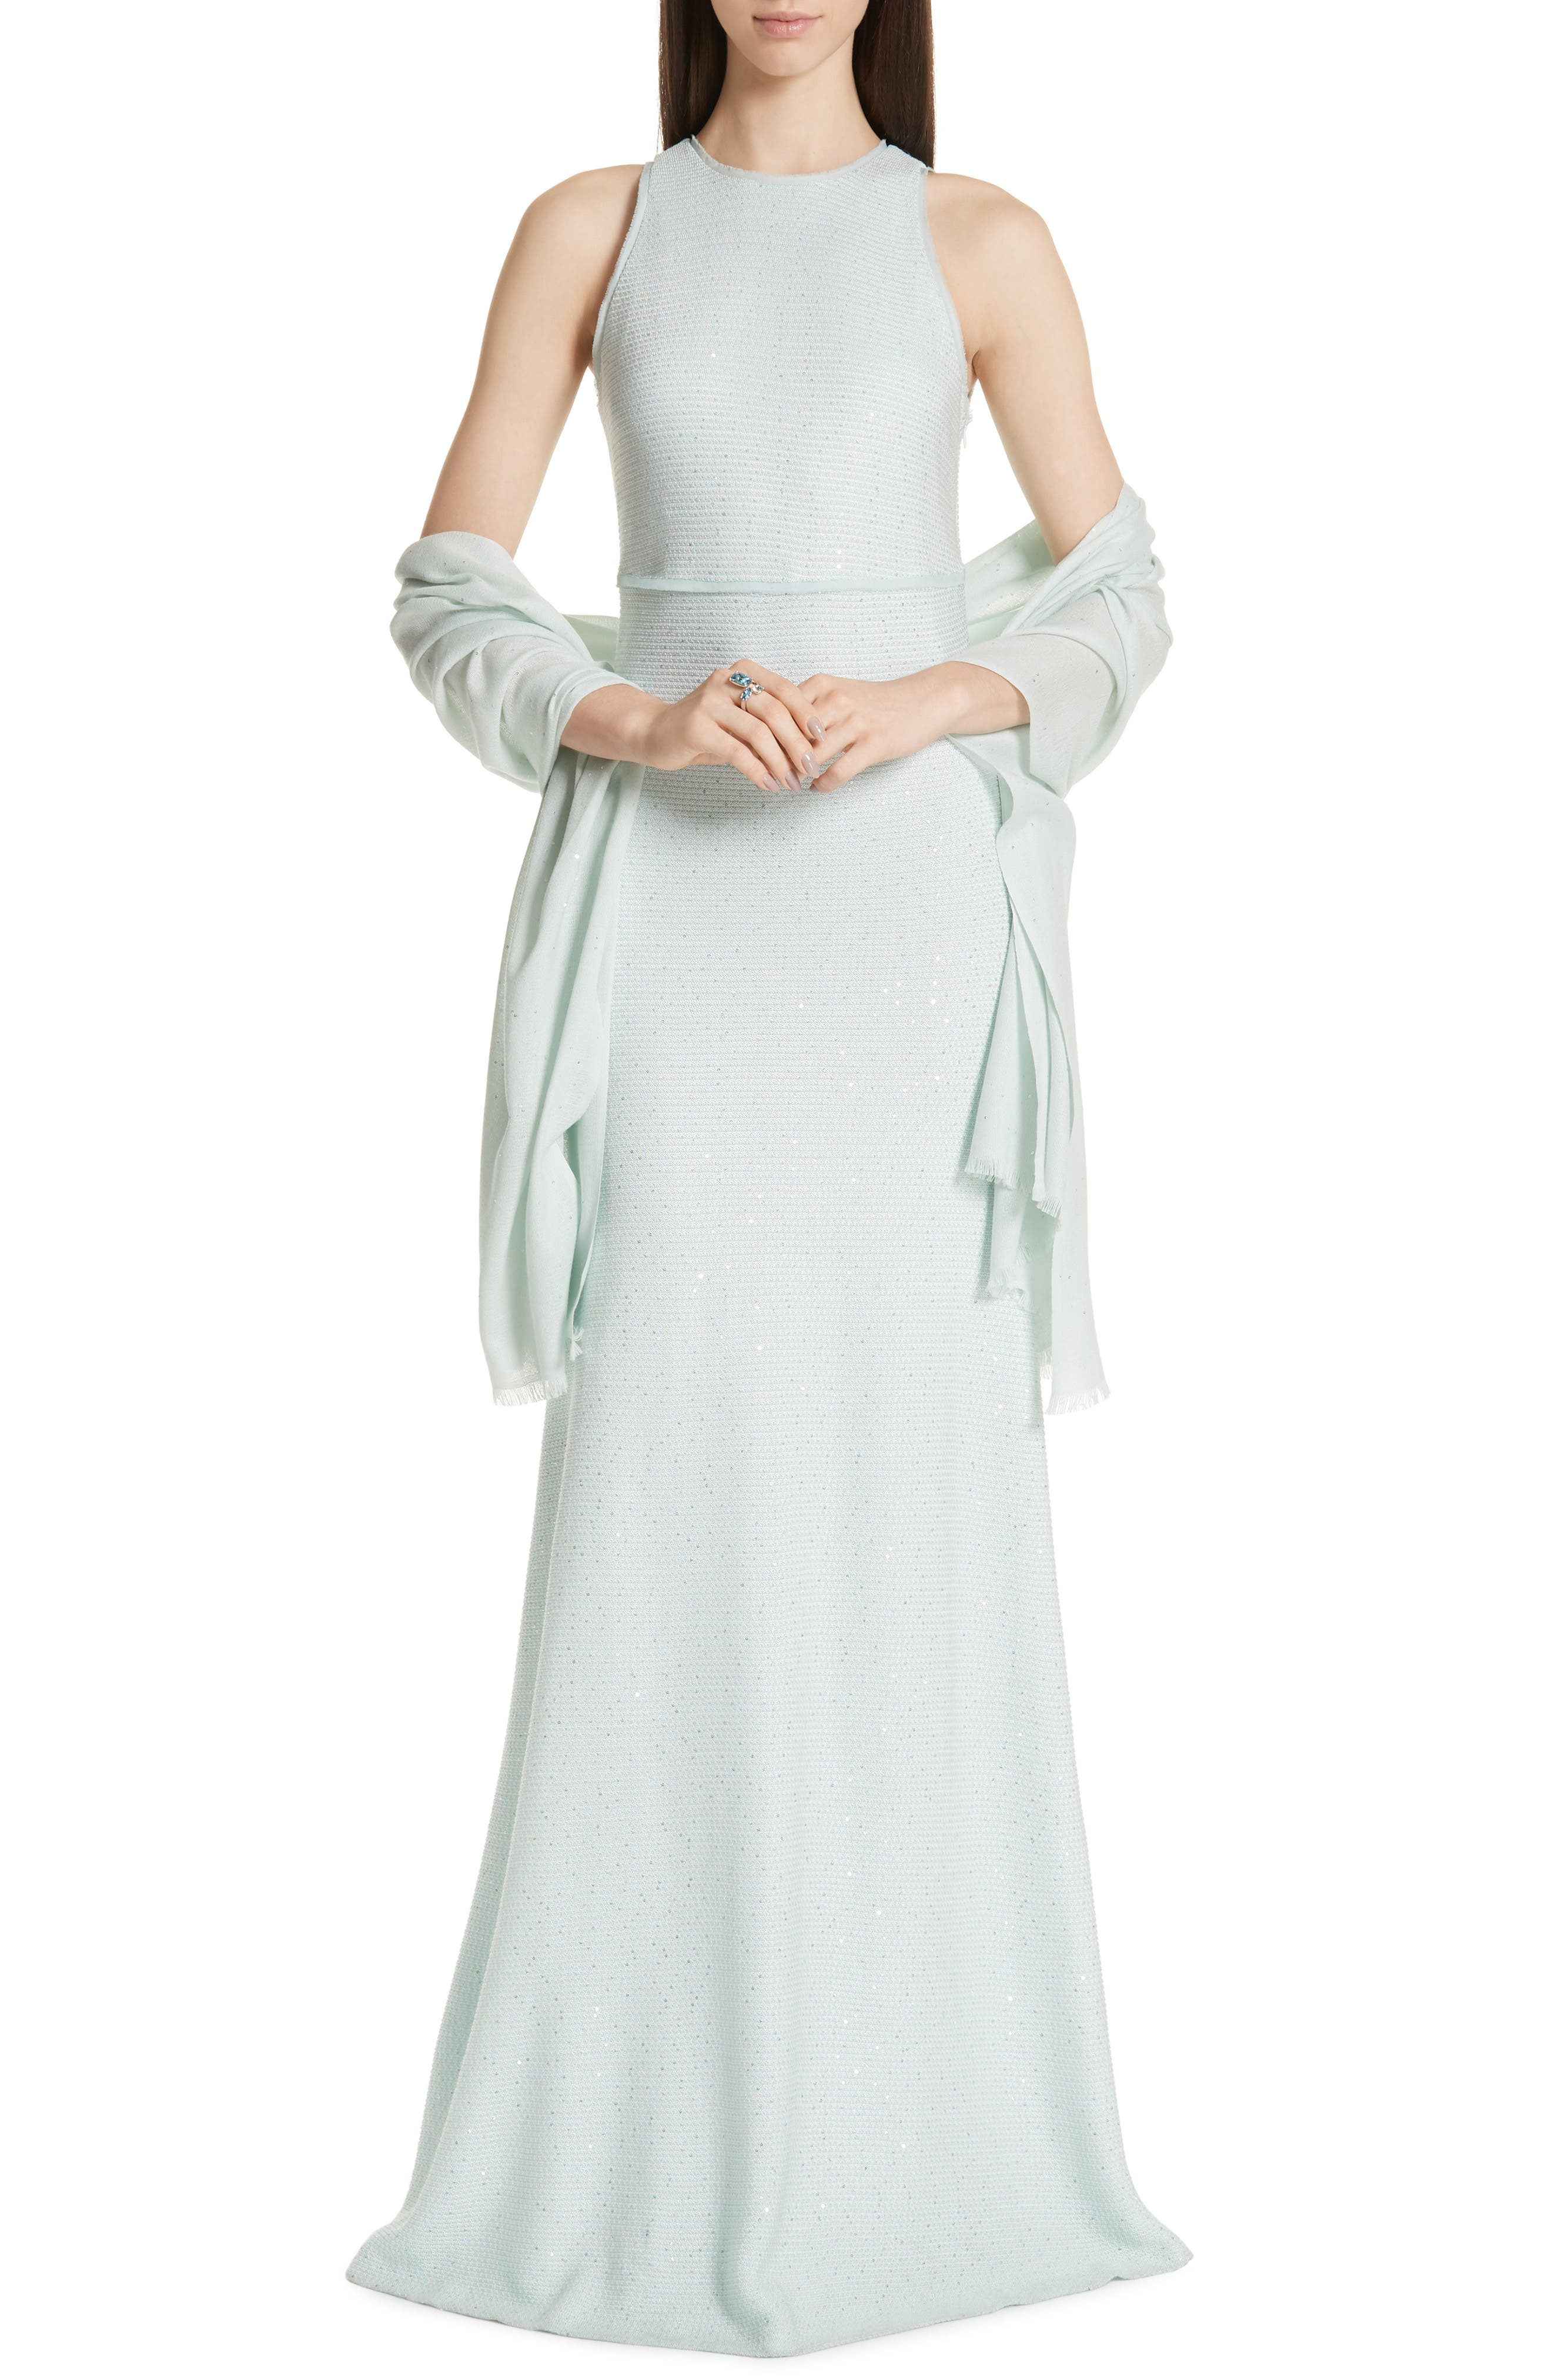 ST. JOHN COLLECTION, Links Sequin Knit Gown, Alternate thumbnail 7, color, OPAL